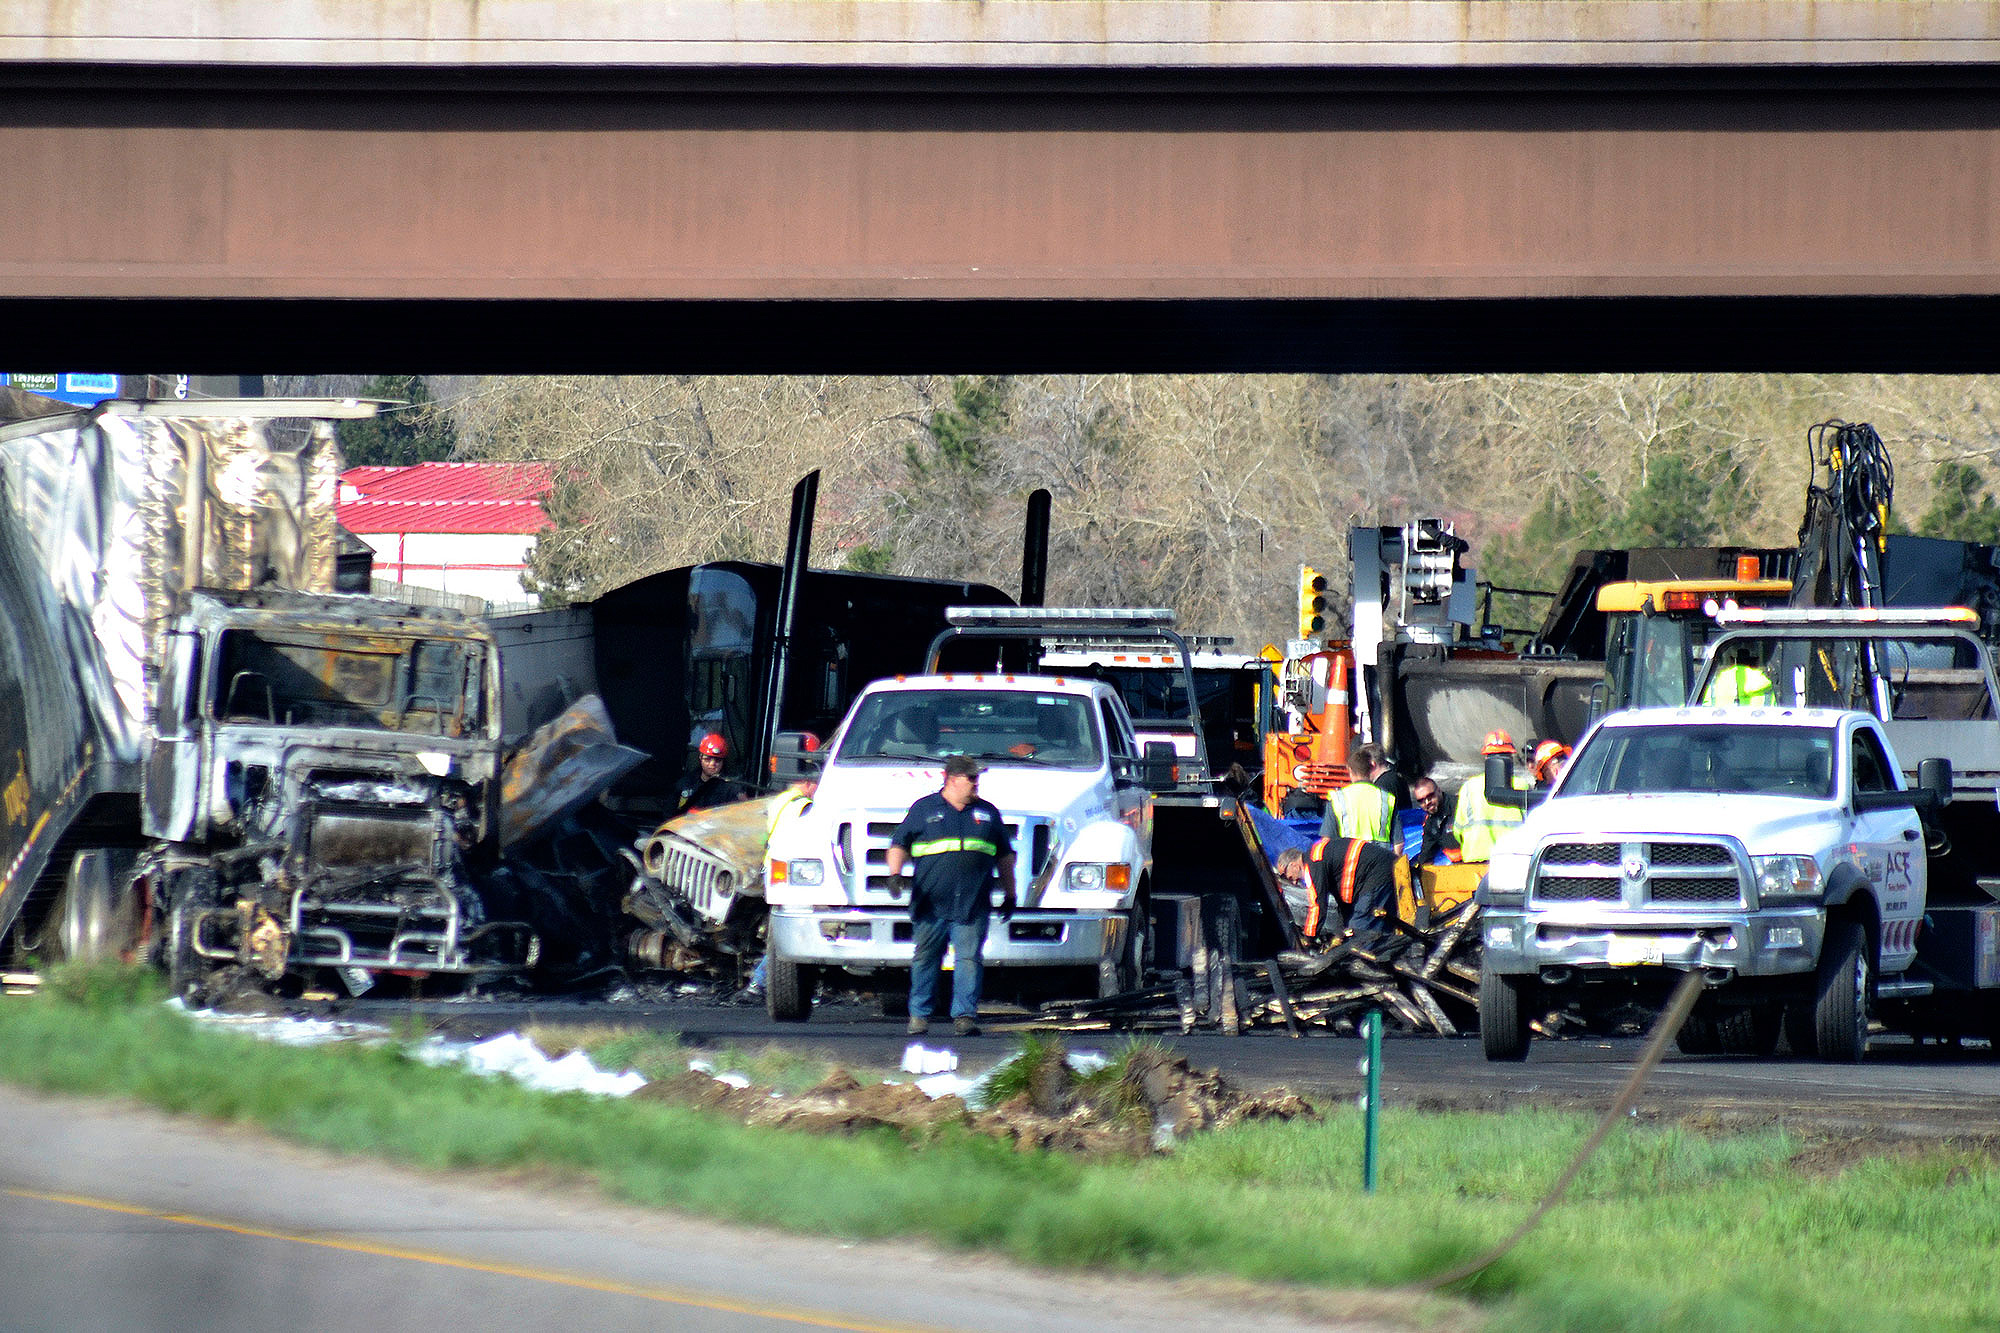 Prosecutors: Truck Driver In Fatal Crash Tried To Flee Scene, Should